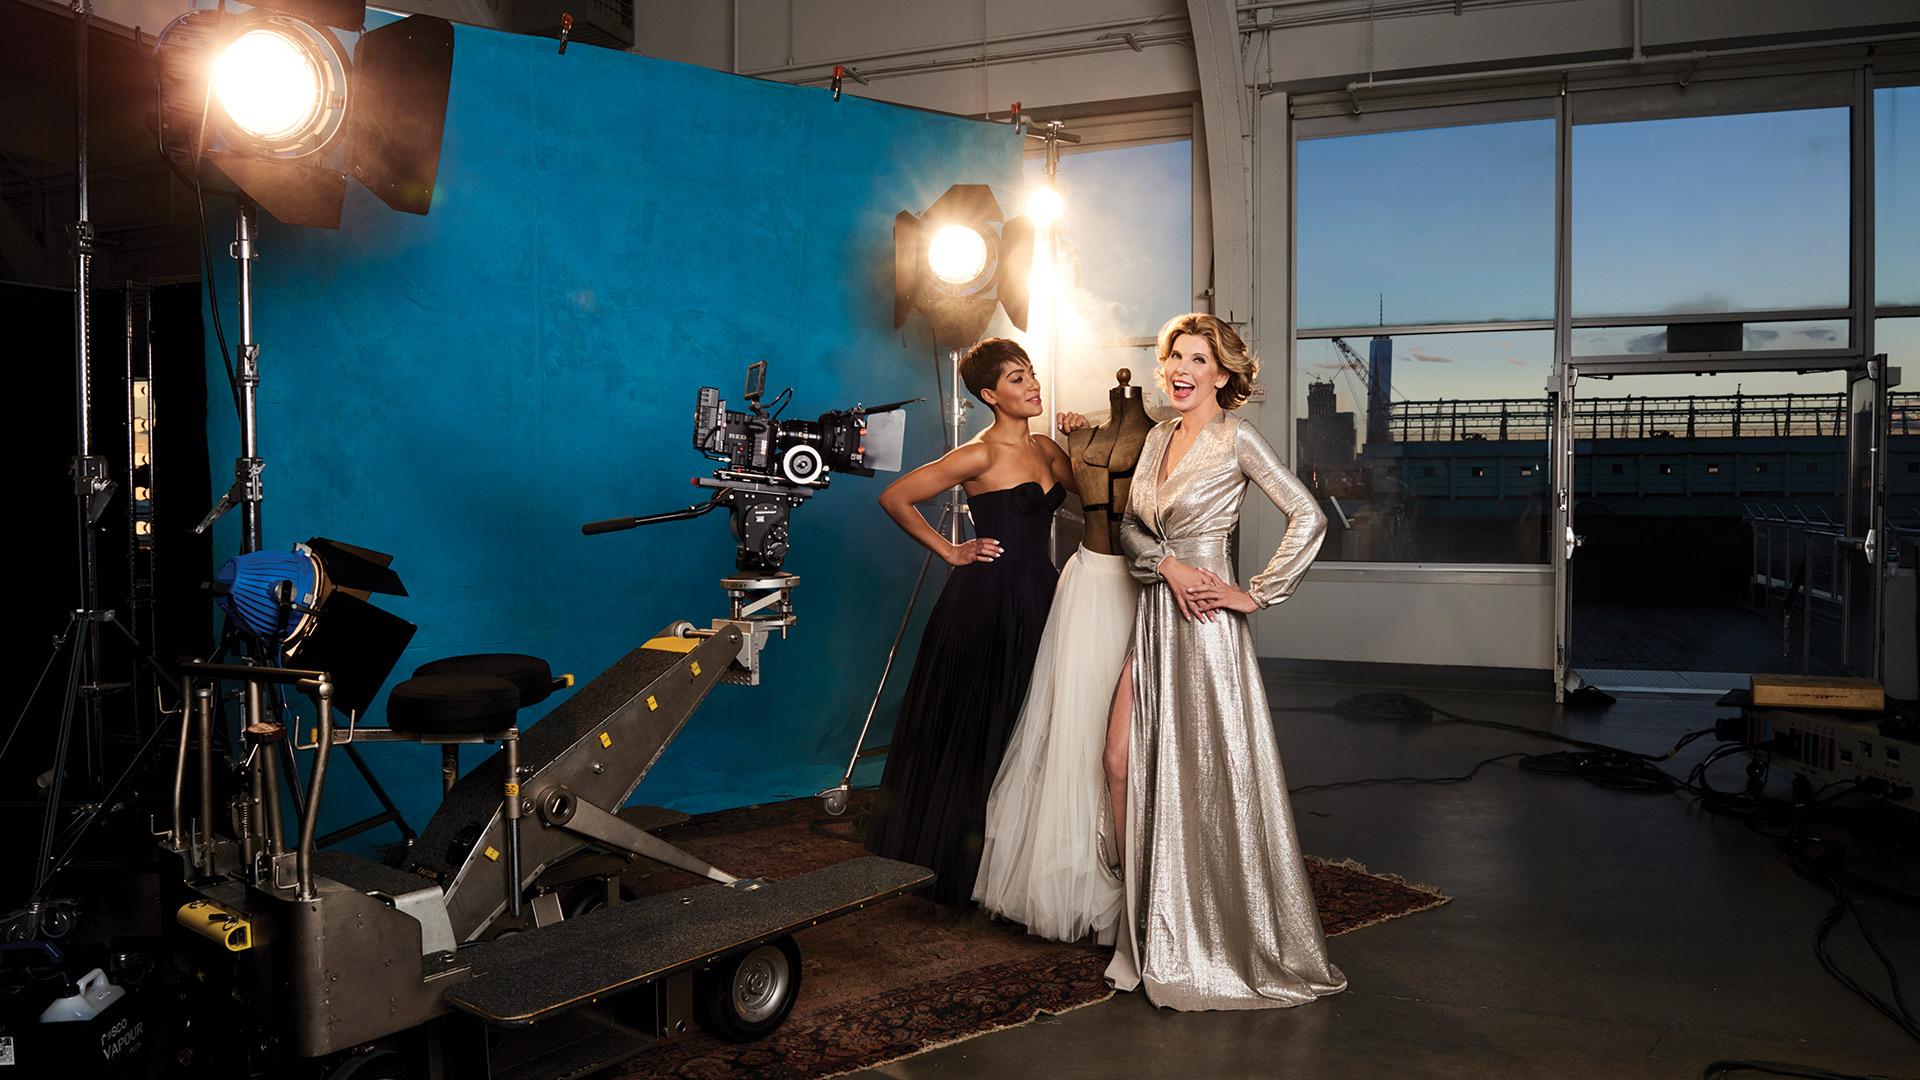 Cancel your plans and have a TV date night with Christine Baranski and Cush Jumbo!